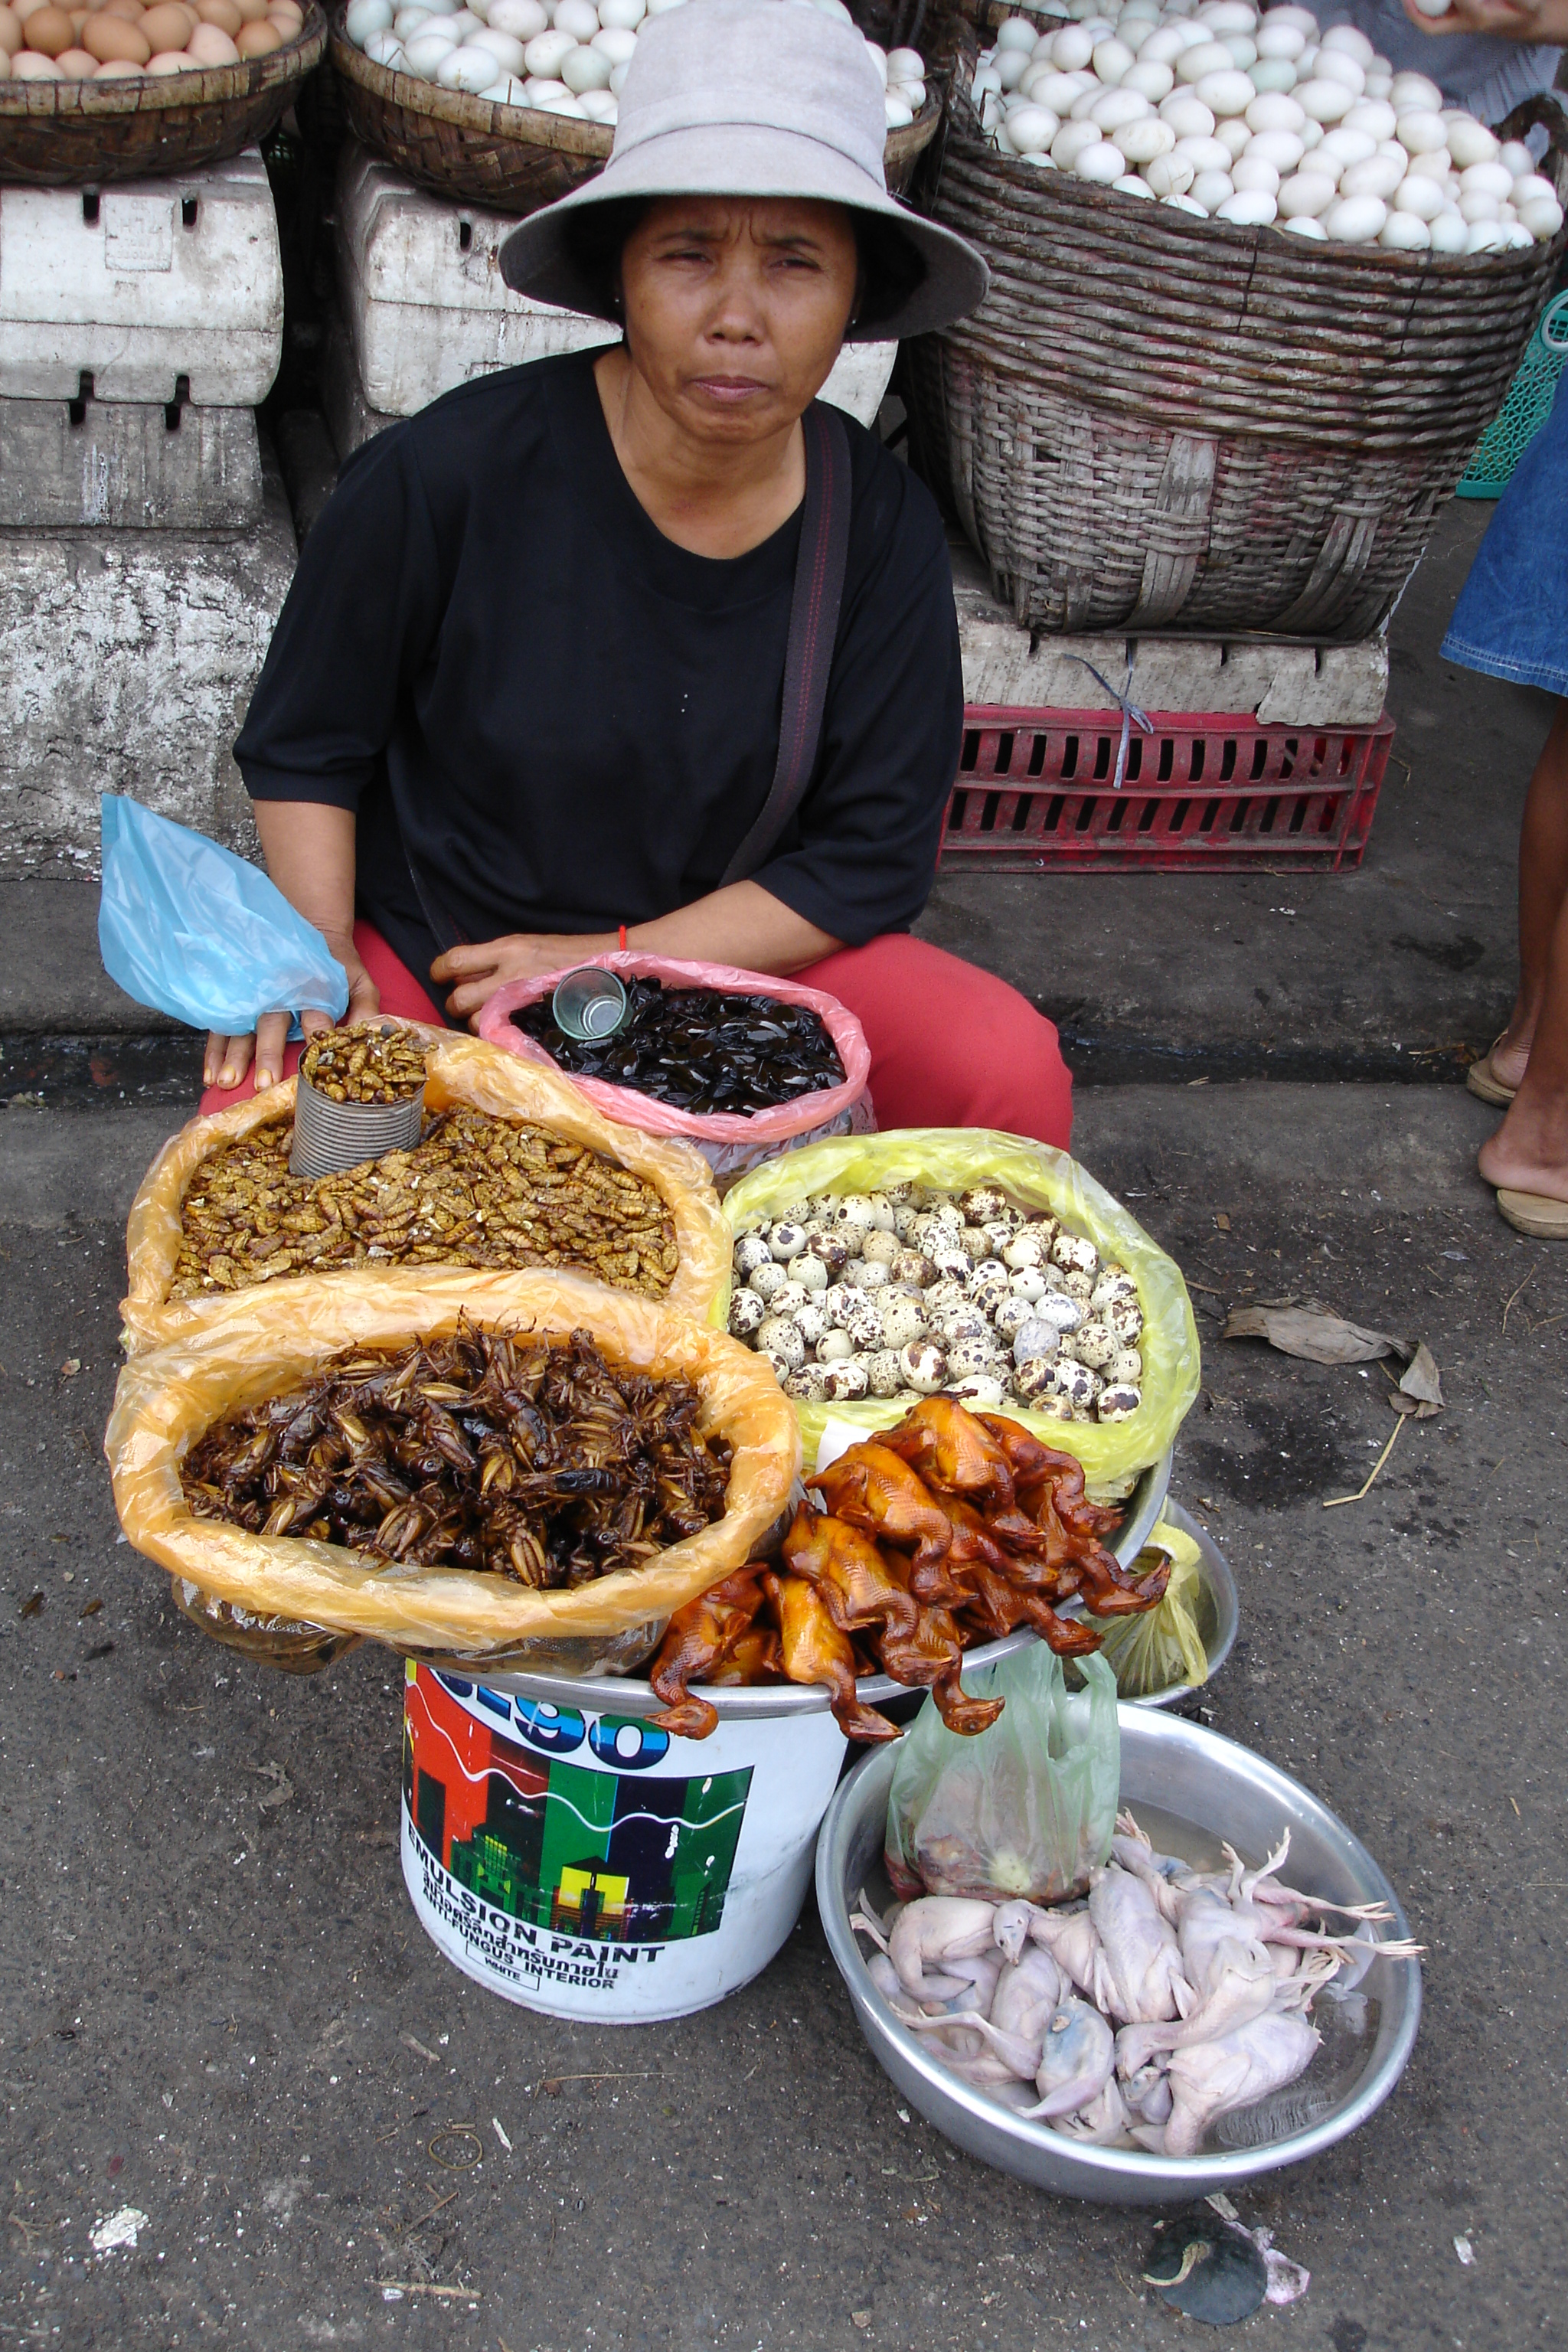 Cambodian Food Market is a Colourful, Noisy and Smelly Asault on the Senses